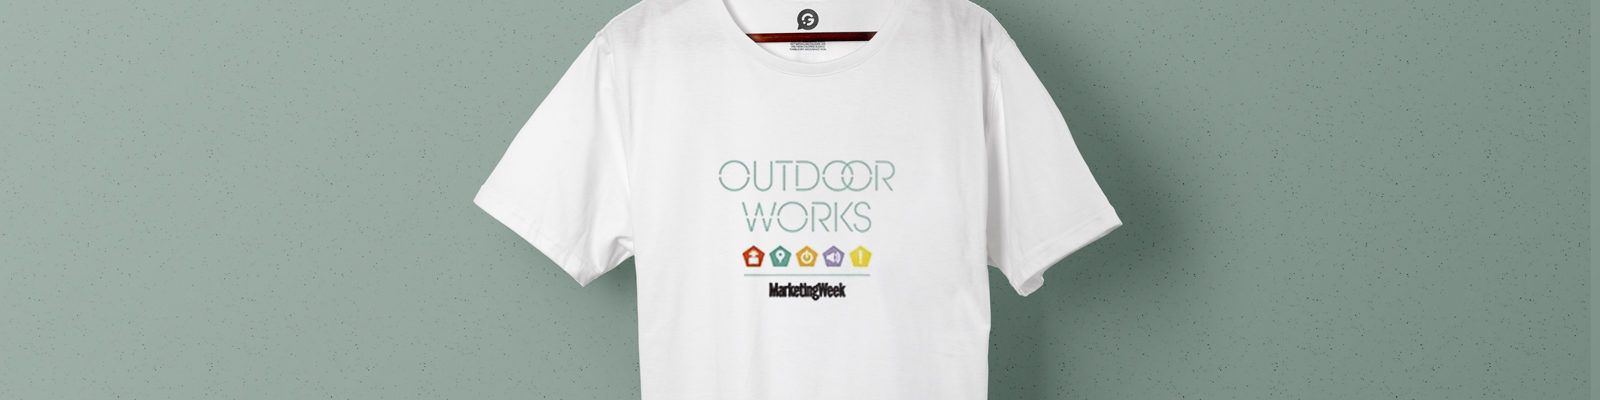 Printed Workwear for Centaur Media Group's Marketing Week - Header Image